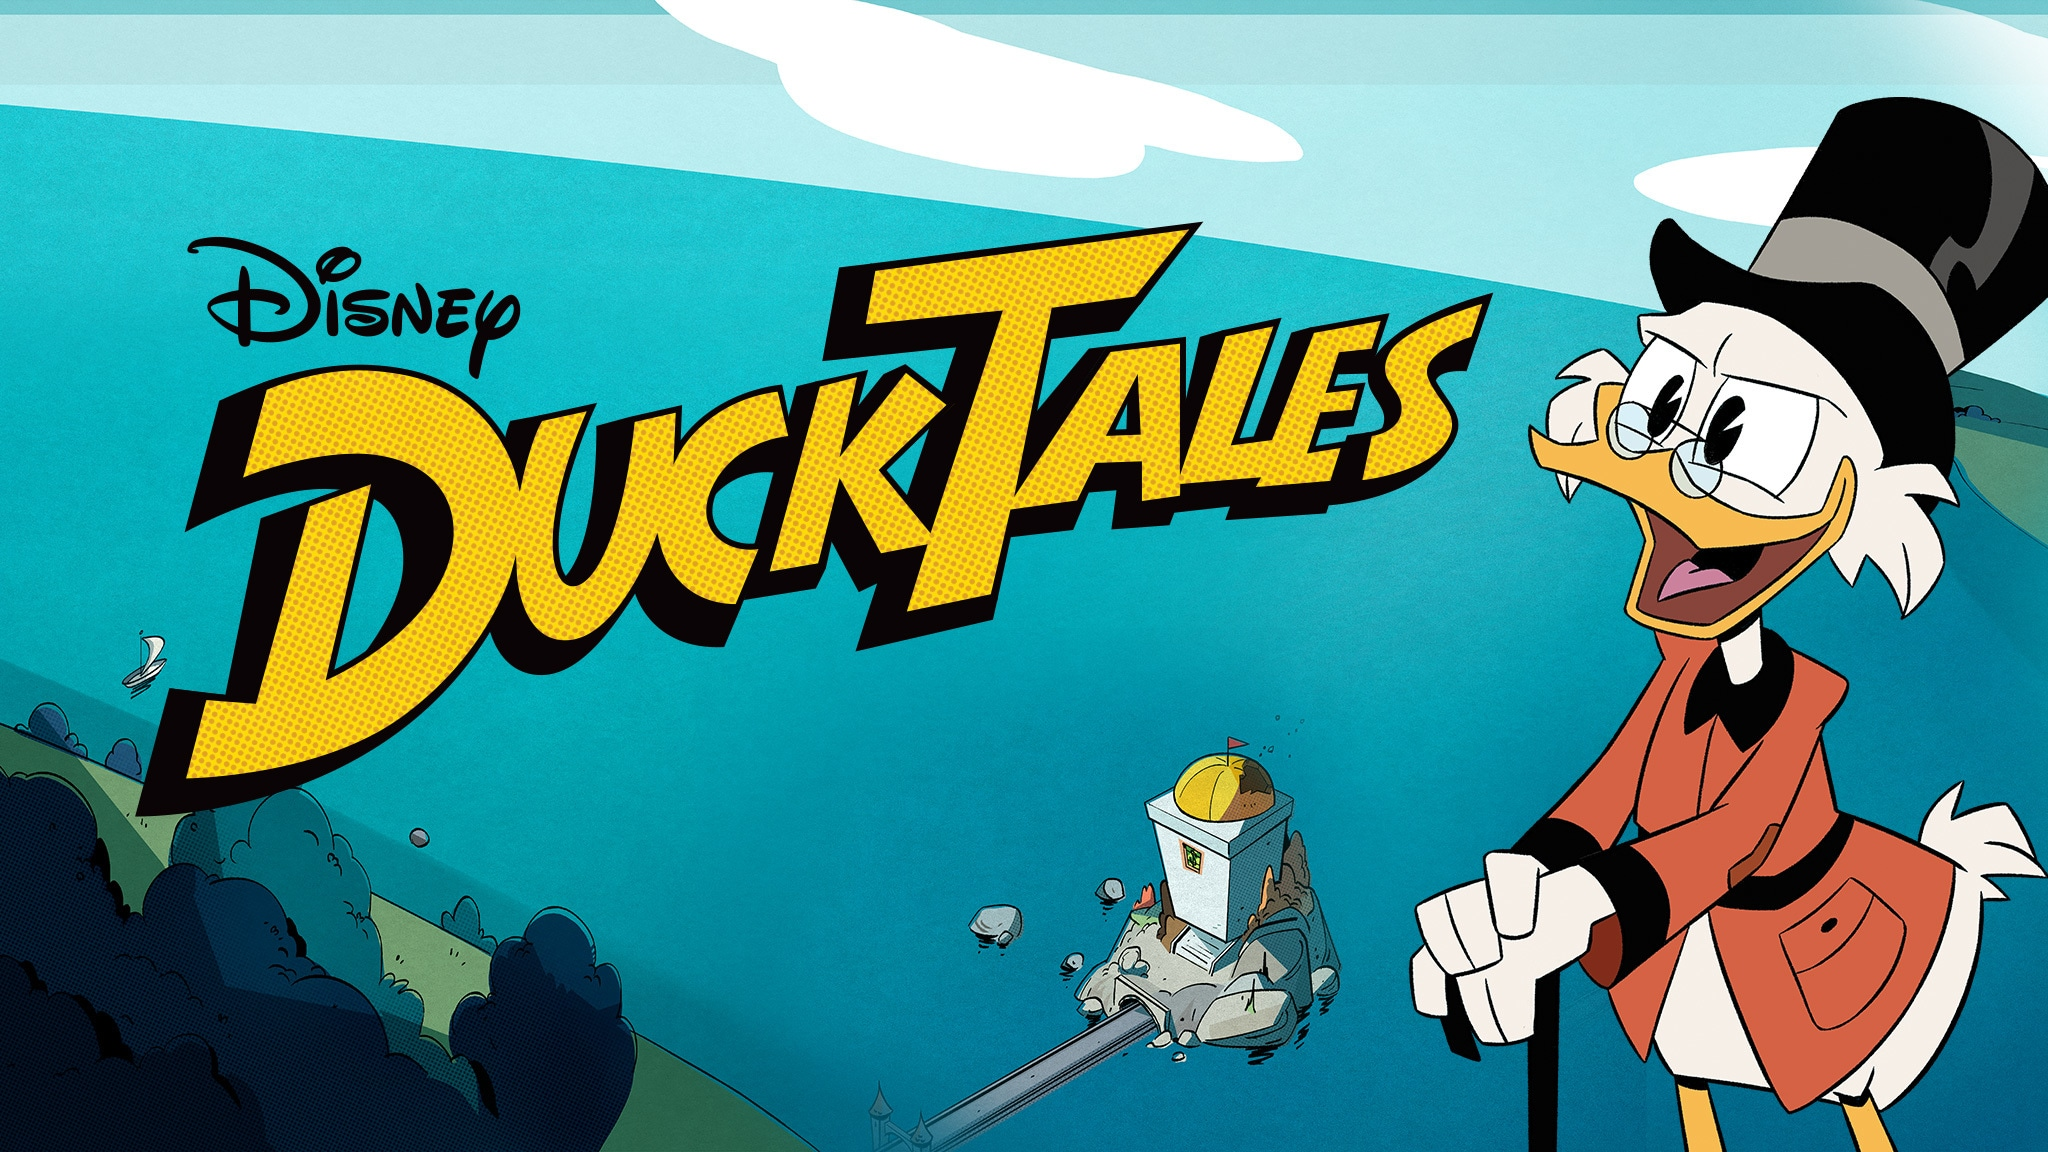 Disney's DuckTales poster with Scrooge McDuck